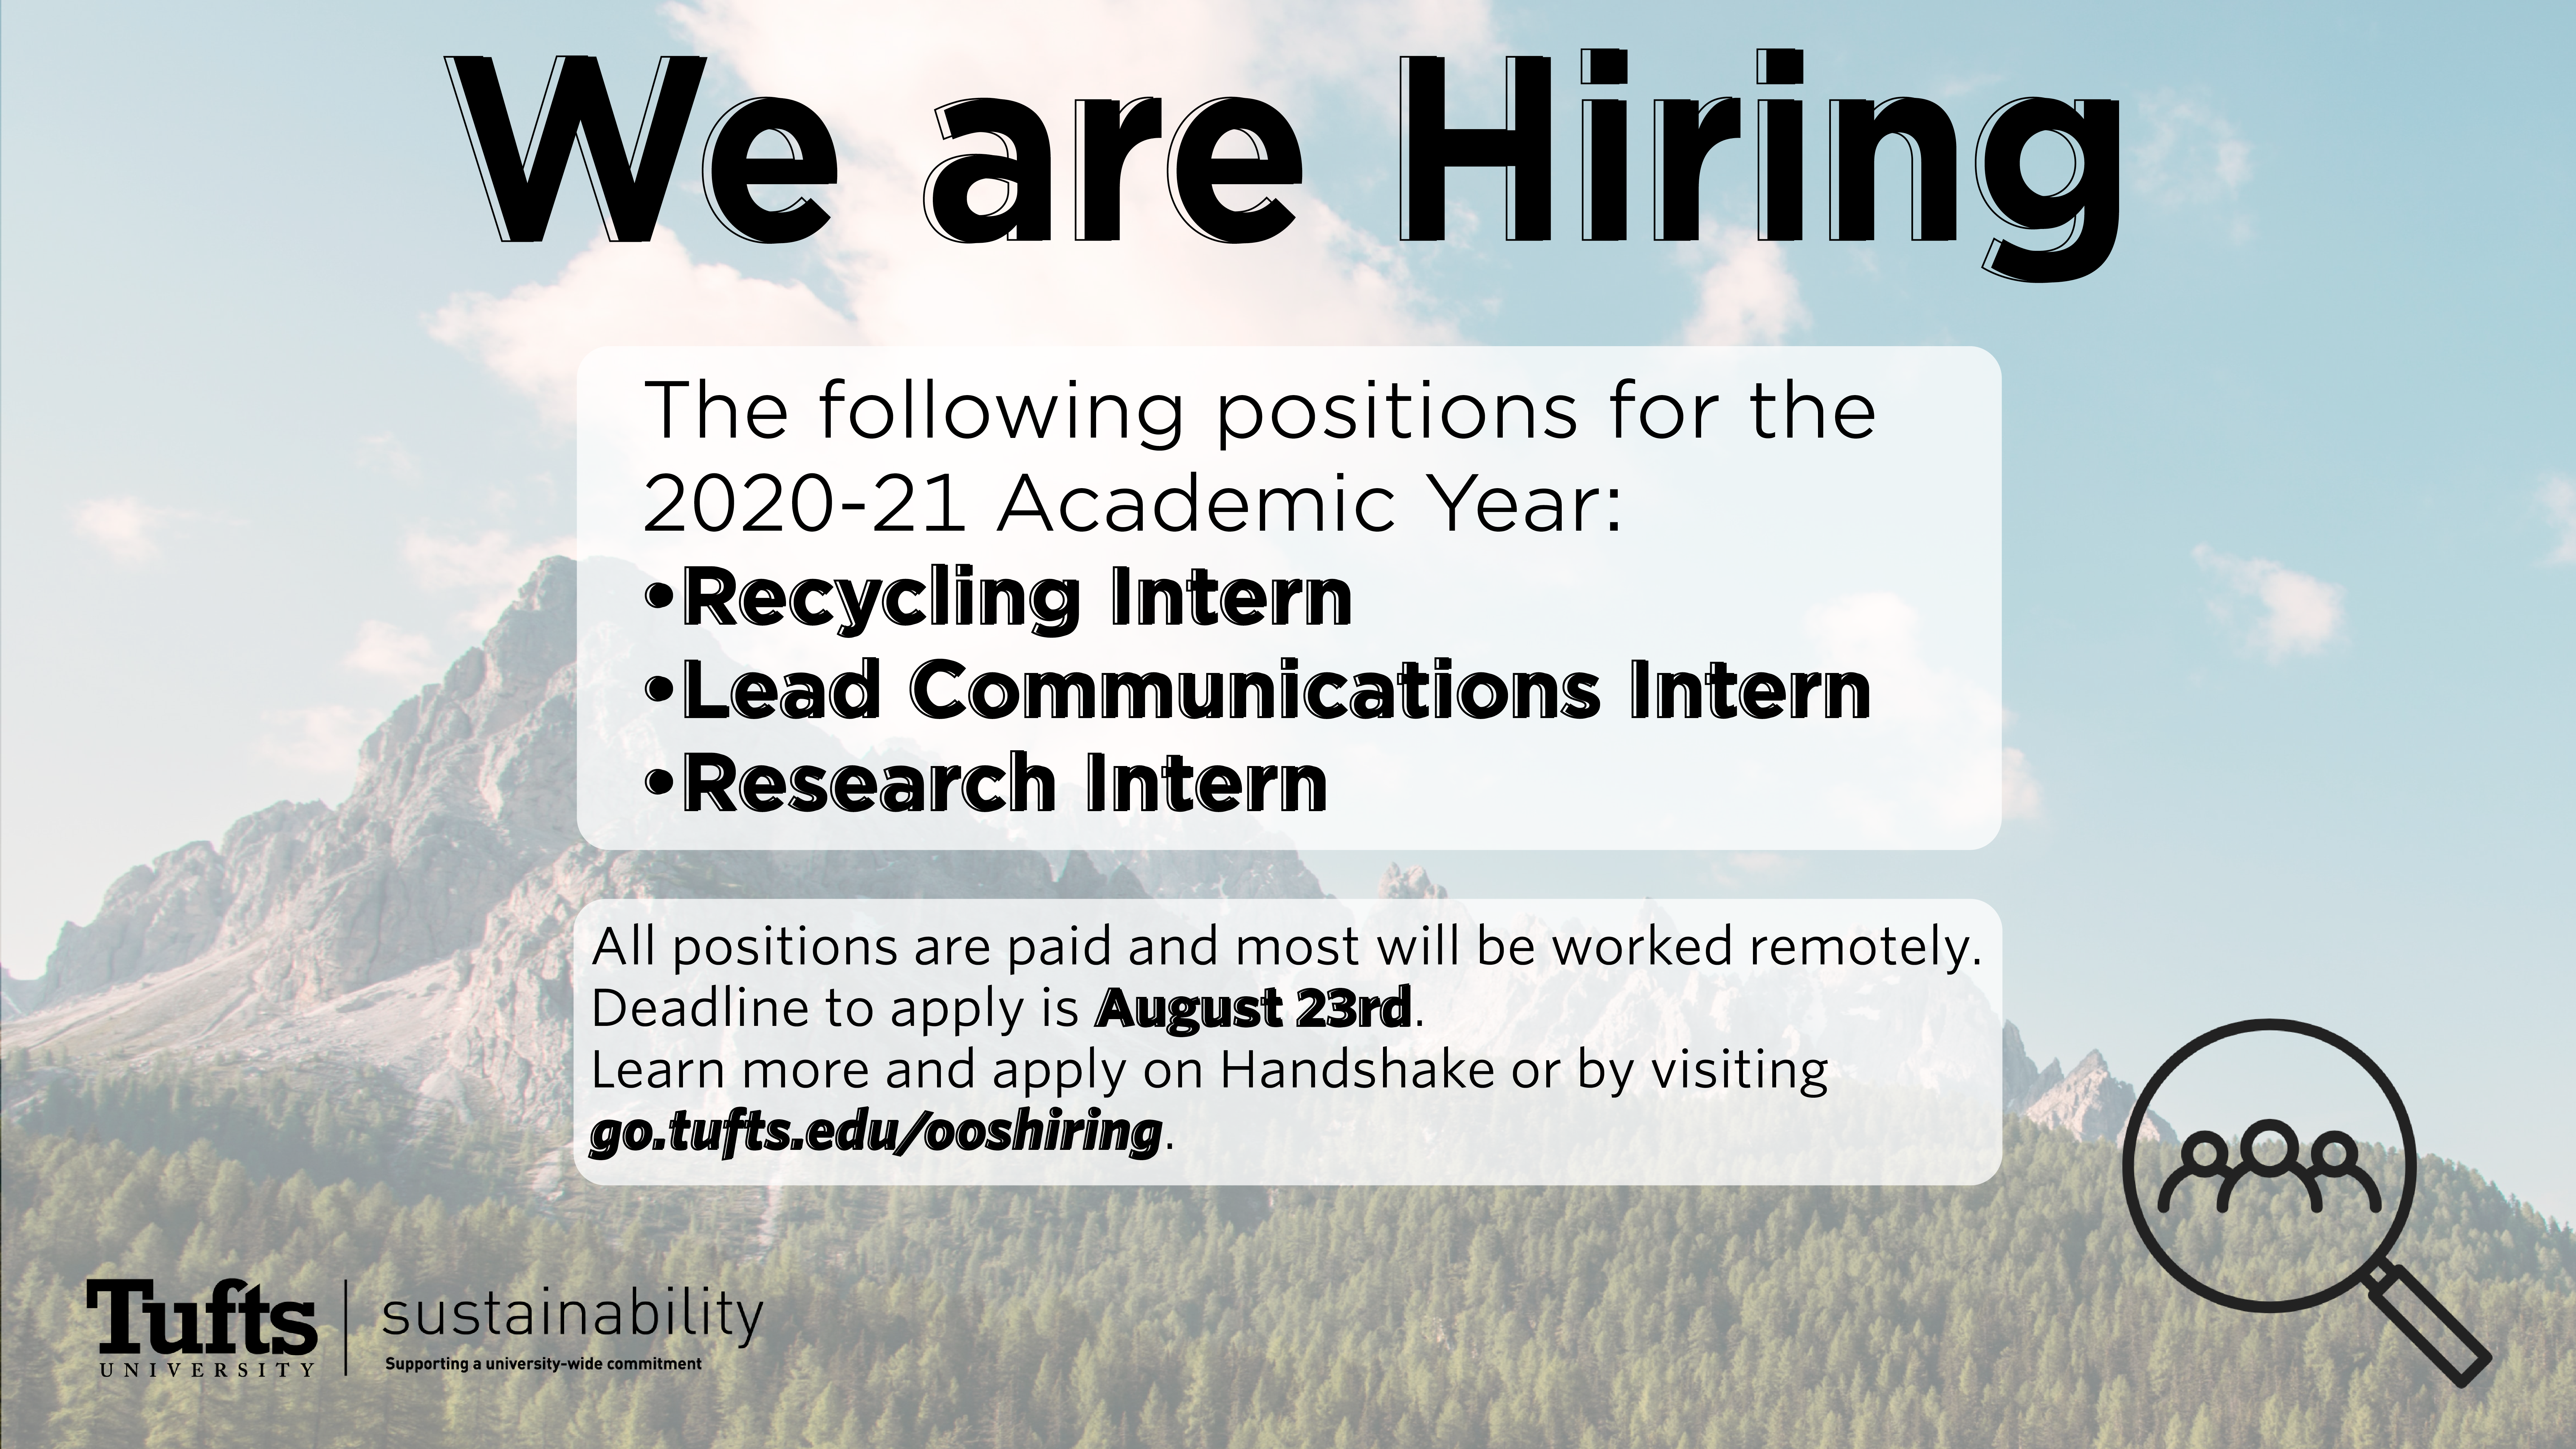 We are hiring graphic for fall 2020, image of the mountain and forest in the background and hiring information in the foreground